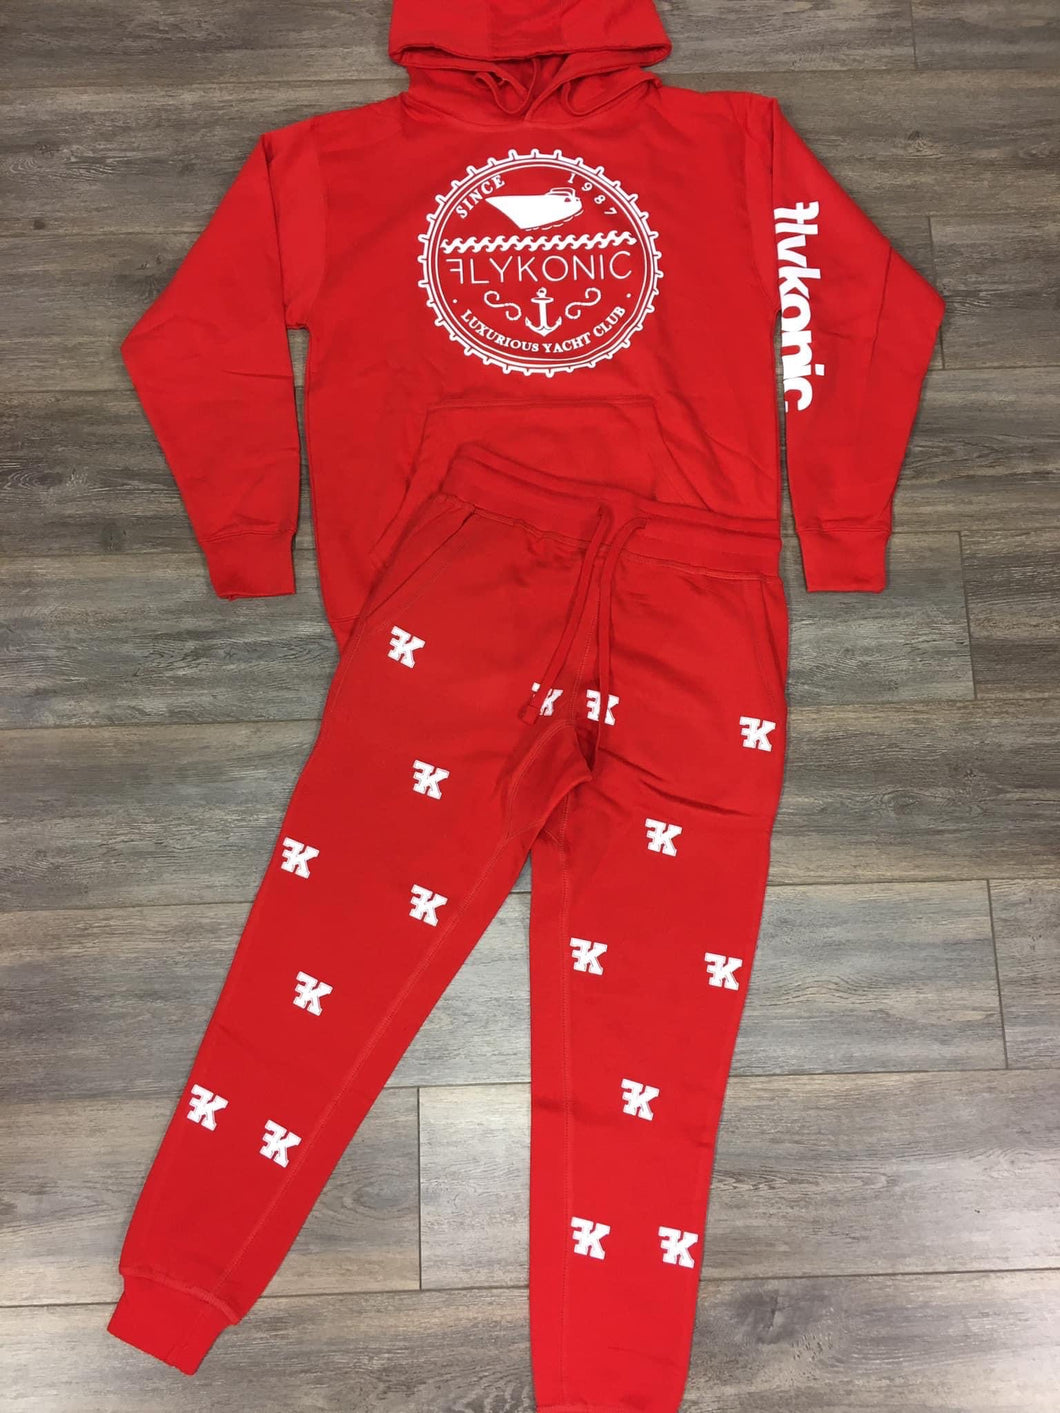 Yacht Club Hoodie with FK Sweatpants